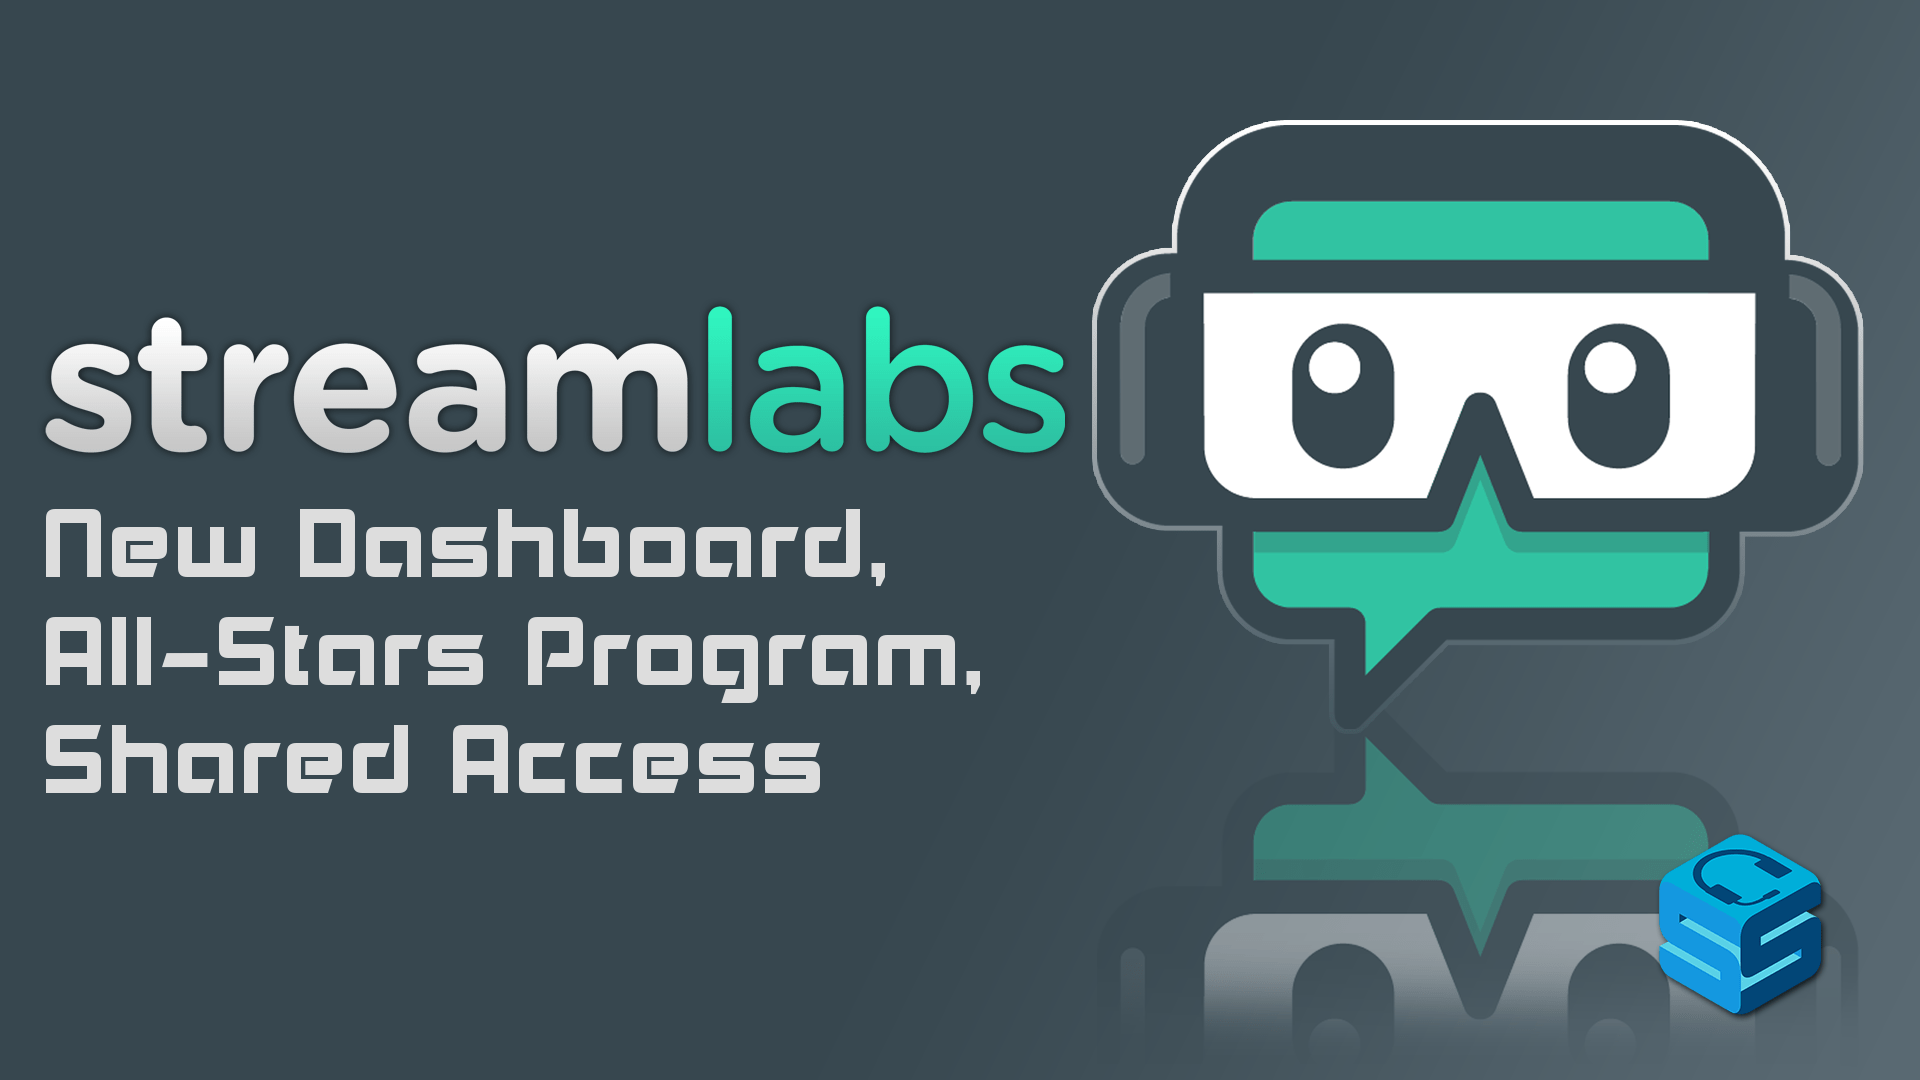 Streamlabs Reveals New Dashboard, All-Stars Program, Shared